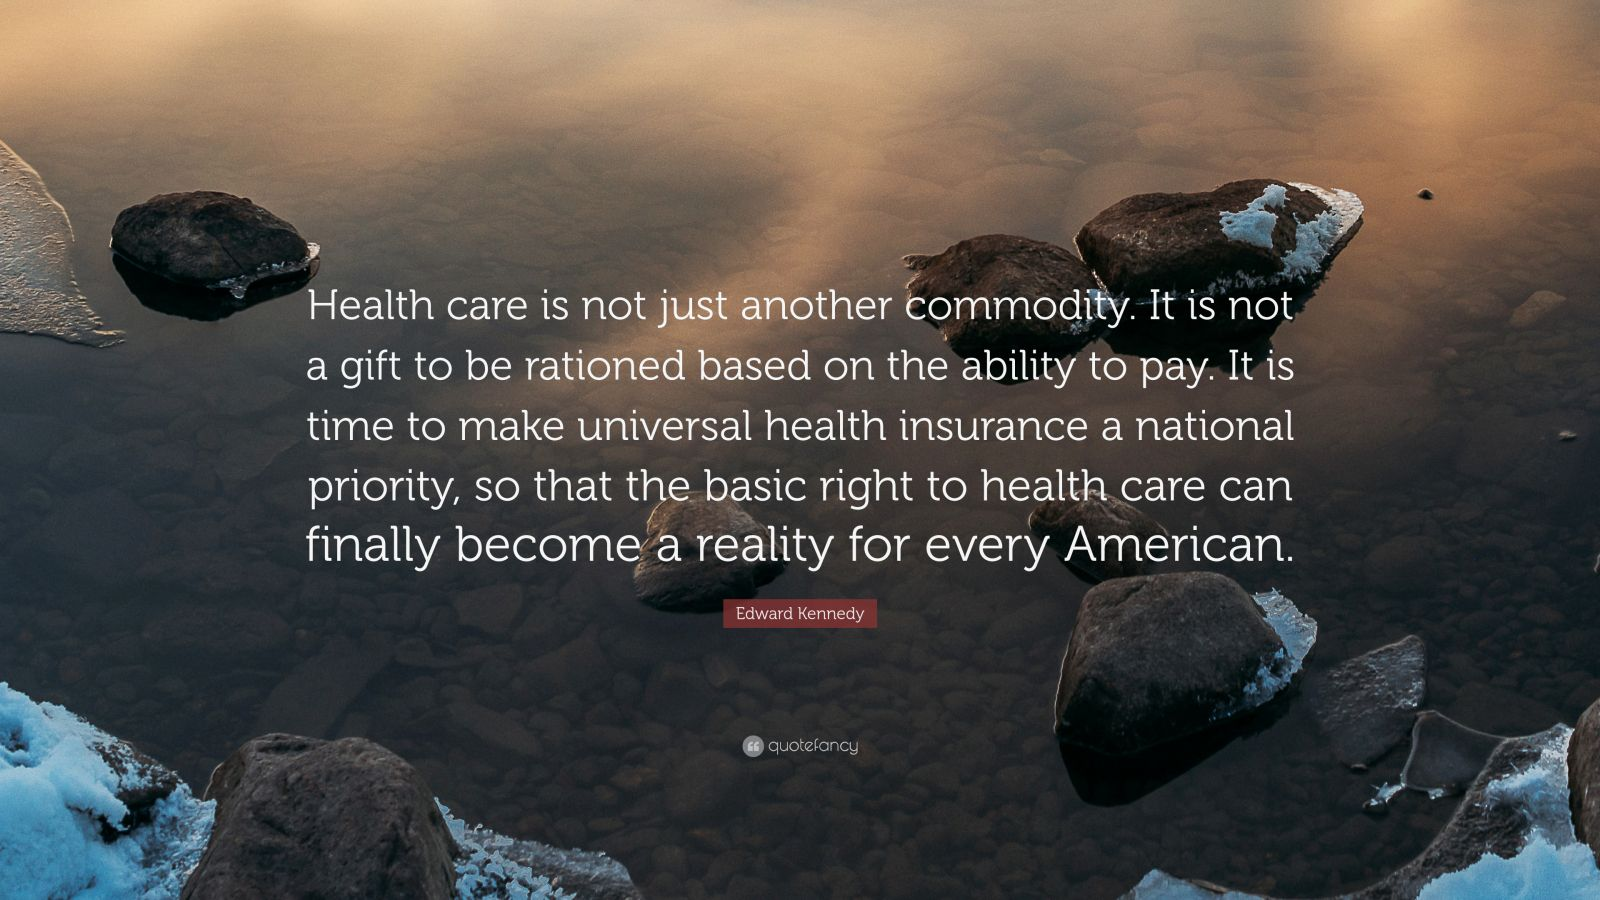 "Edward Kennedy Quote: ""Health care is not just another commodity. It is not a gift to be rationed based on the ability to pay. It is time to make universal health insurance a national priority, so that the basic right to health care can finally become a reality for every American."""